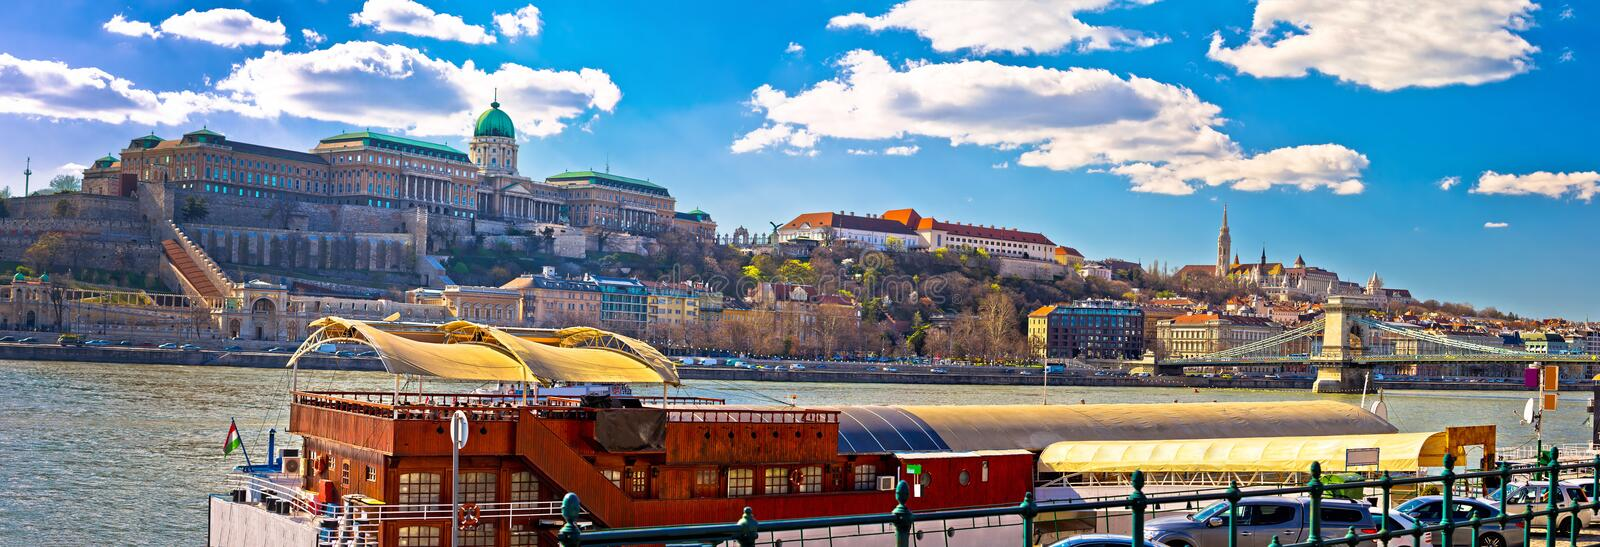 Budapest Danube river historic waterfront architecture springtime view. Capital of Hungary royalty free stock photo